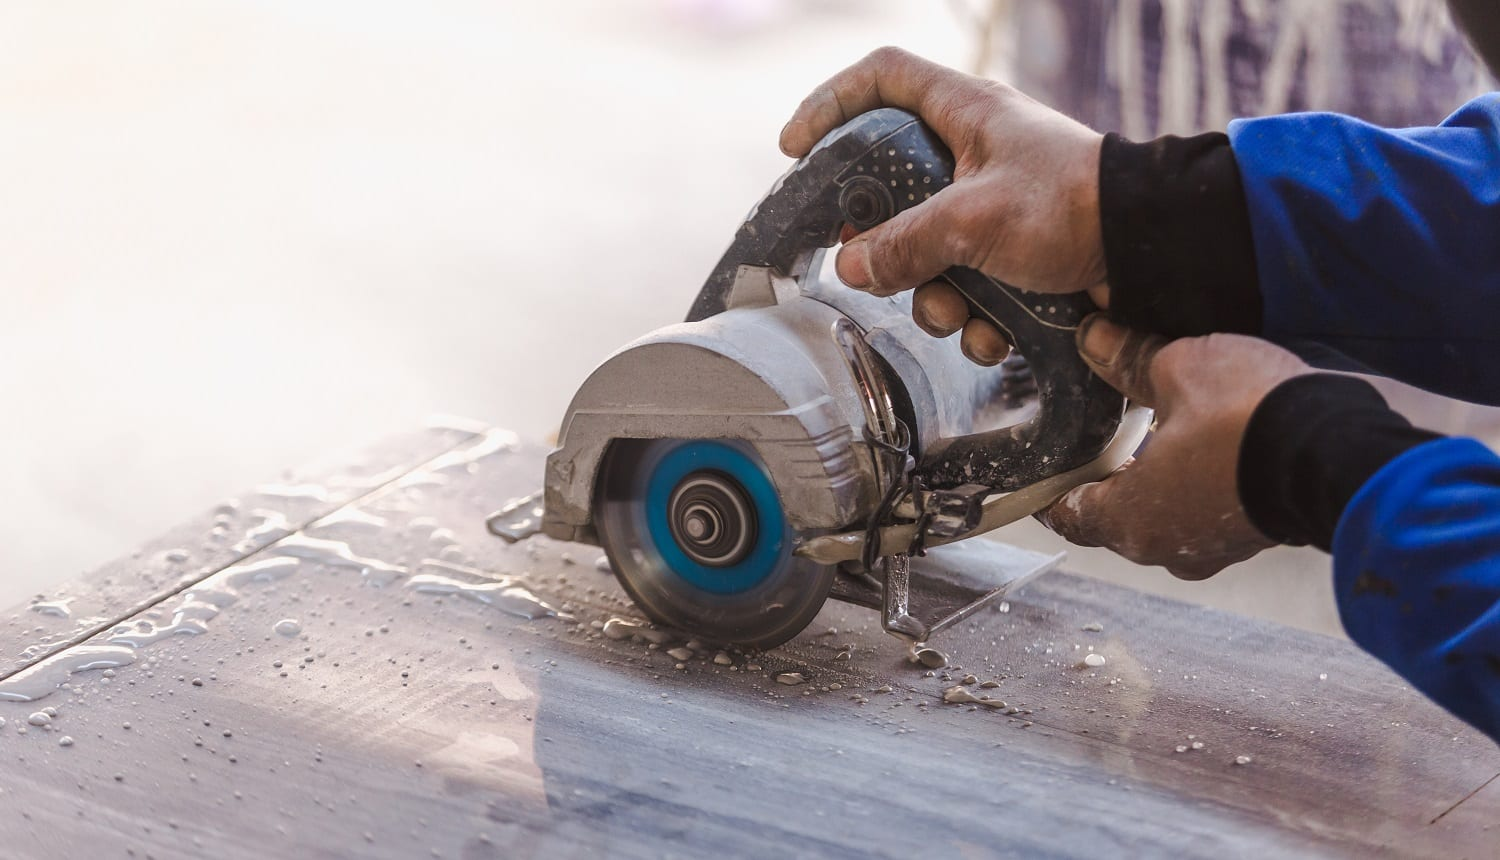 Man professional worker cutting tile with circular saw electric construction interior.